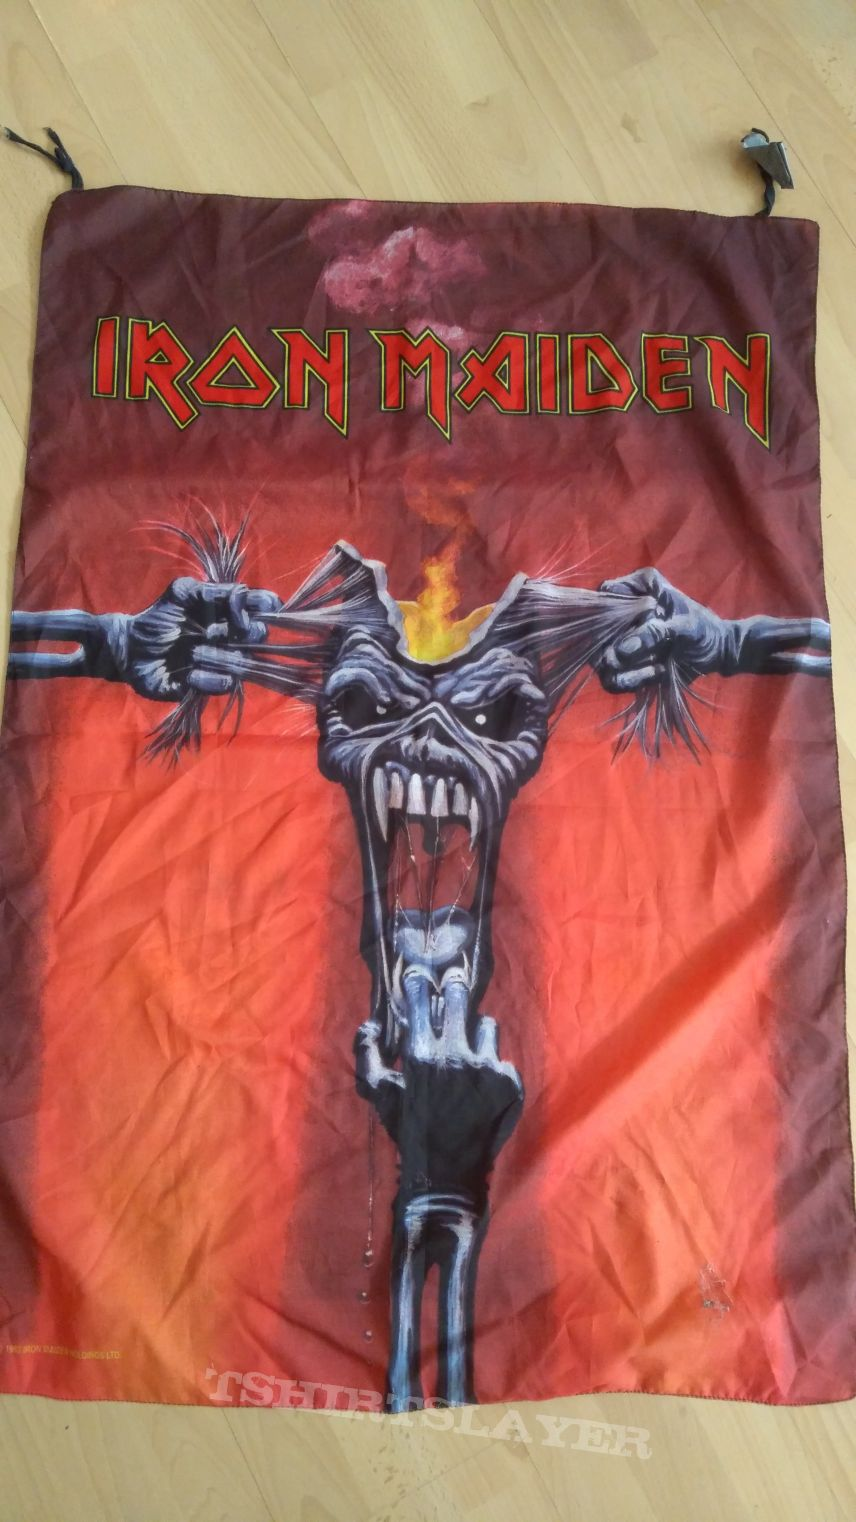 Official iron maiden flag